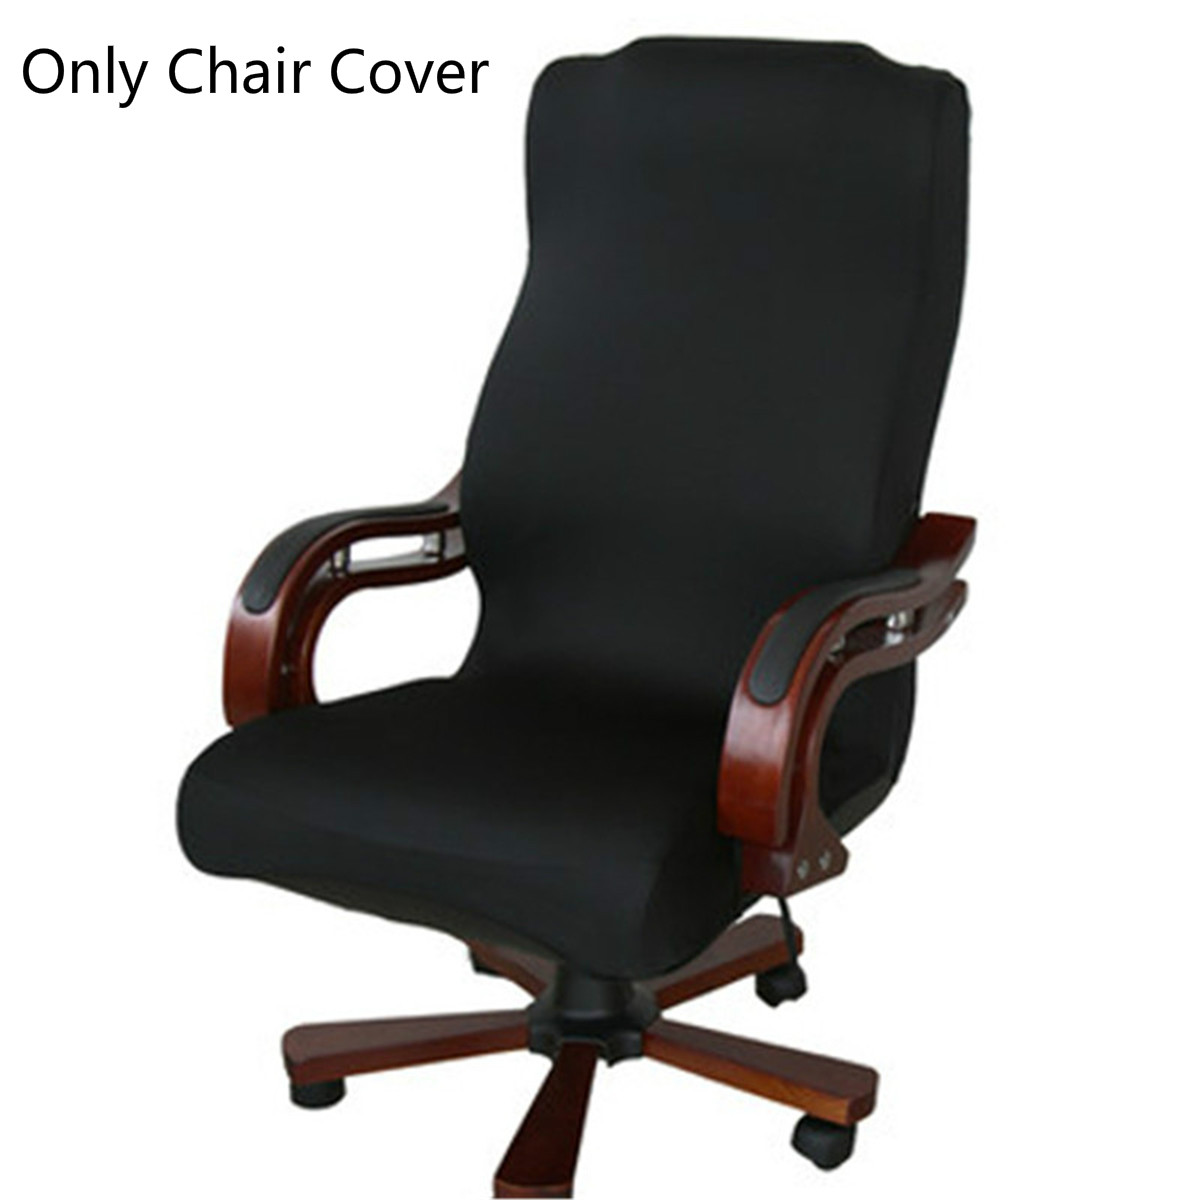 Chair Cover Elastic Spandex Office Computer Chair Cover Side Zipper Design Arm Chair Protector Cover Recouvre Chaise Stretch Rotating Lift Chair Walmart Com Walmart Com